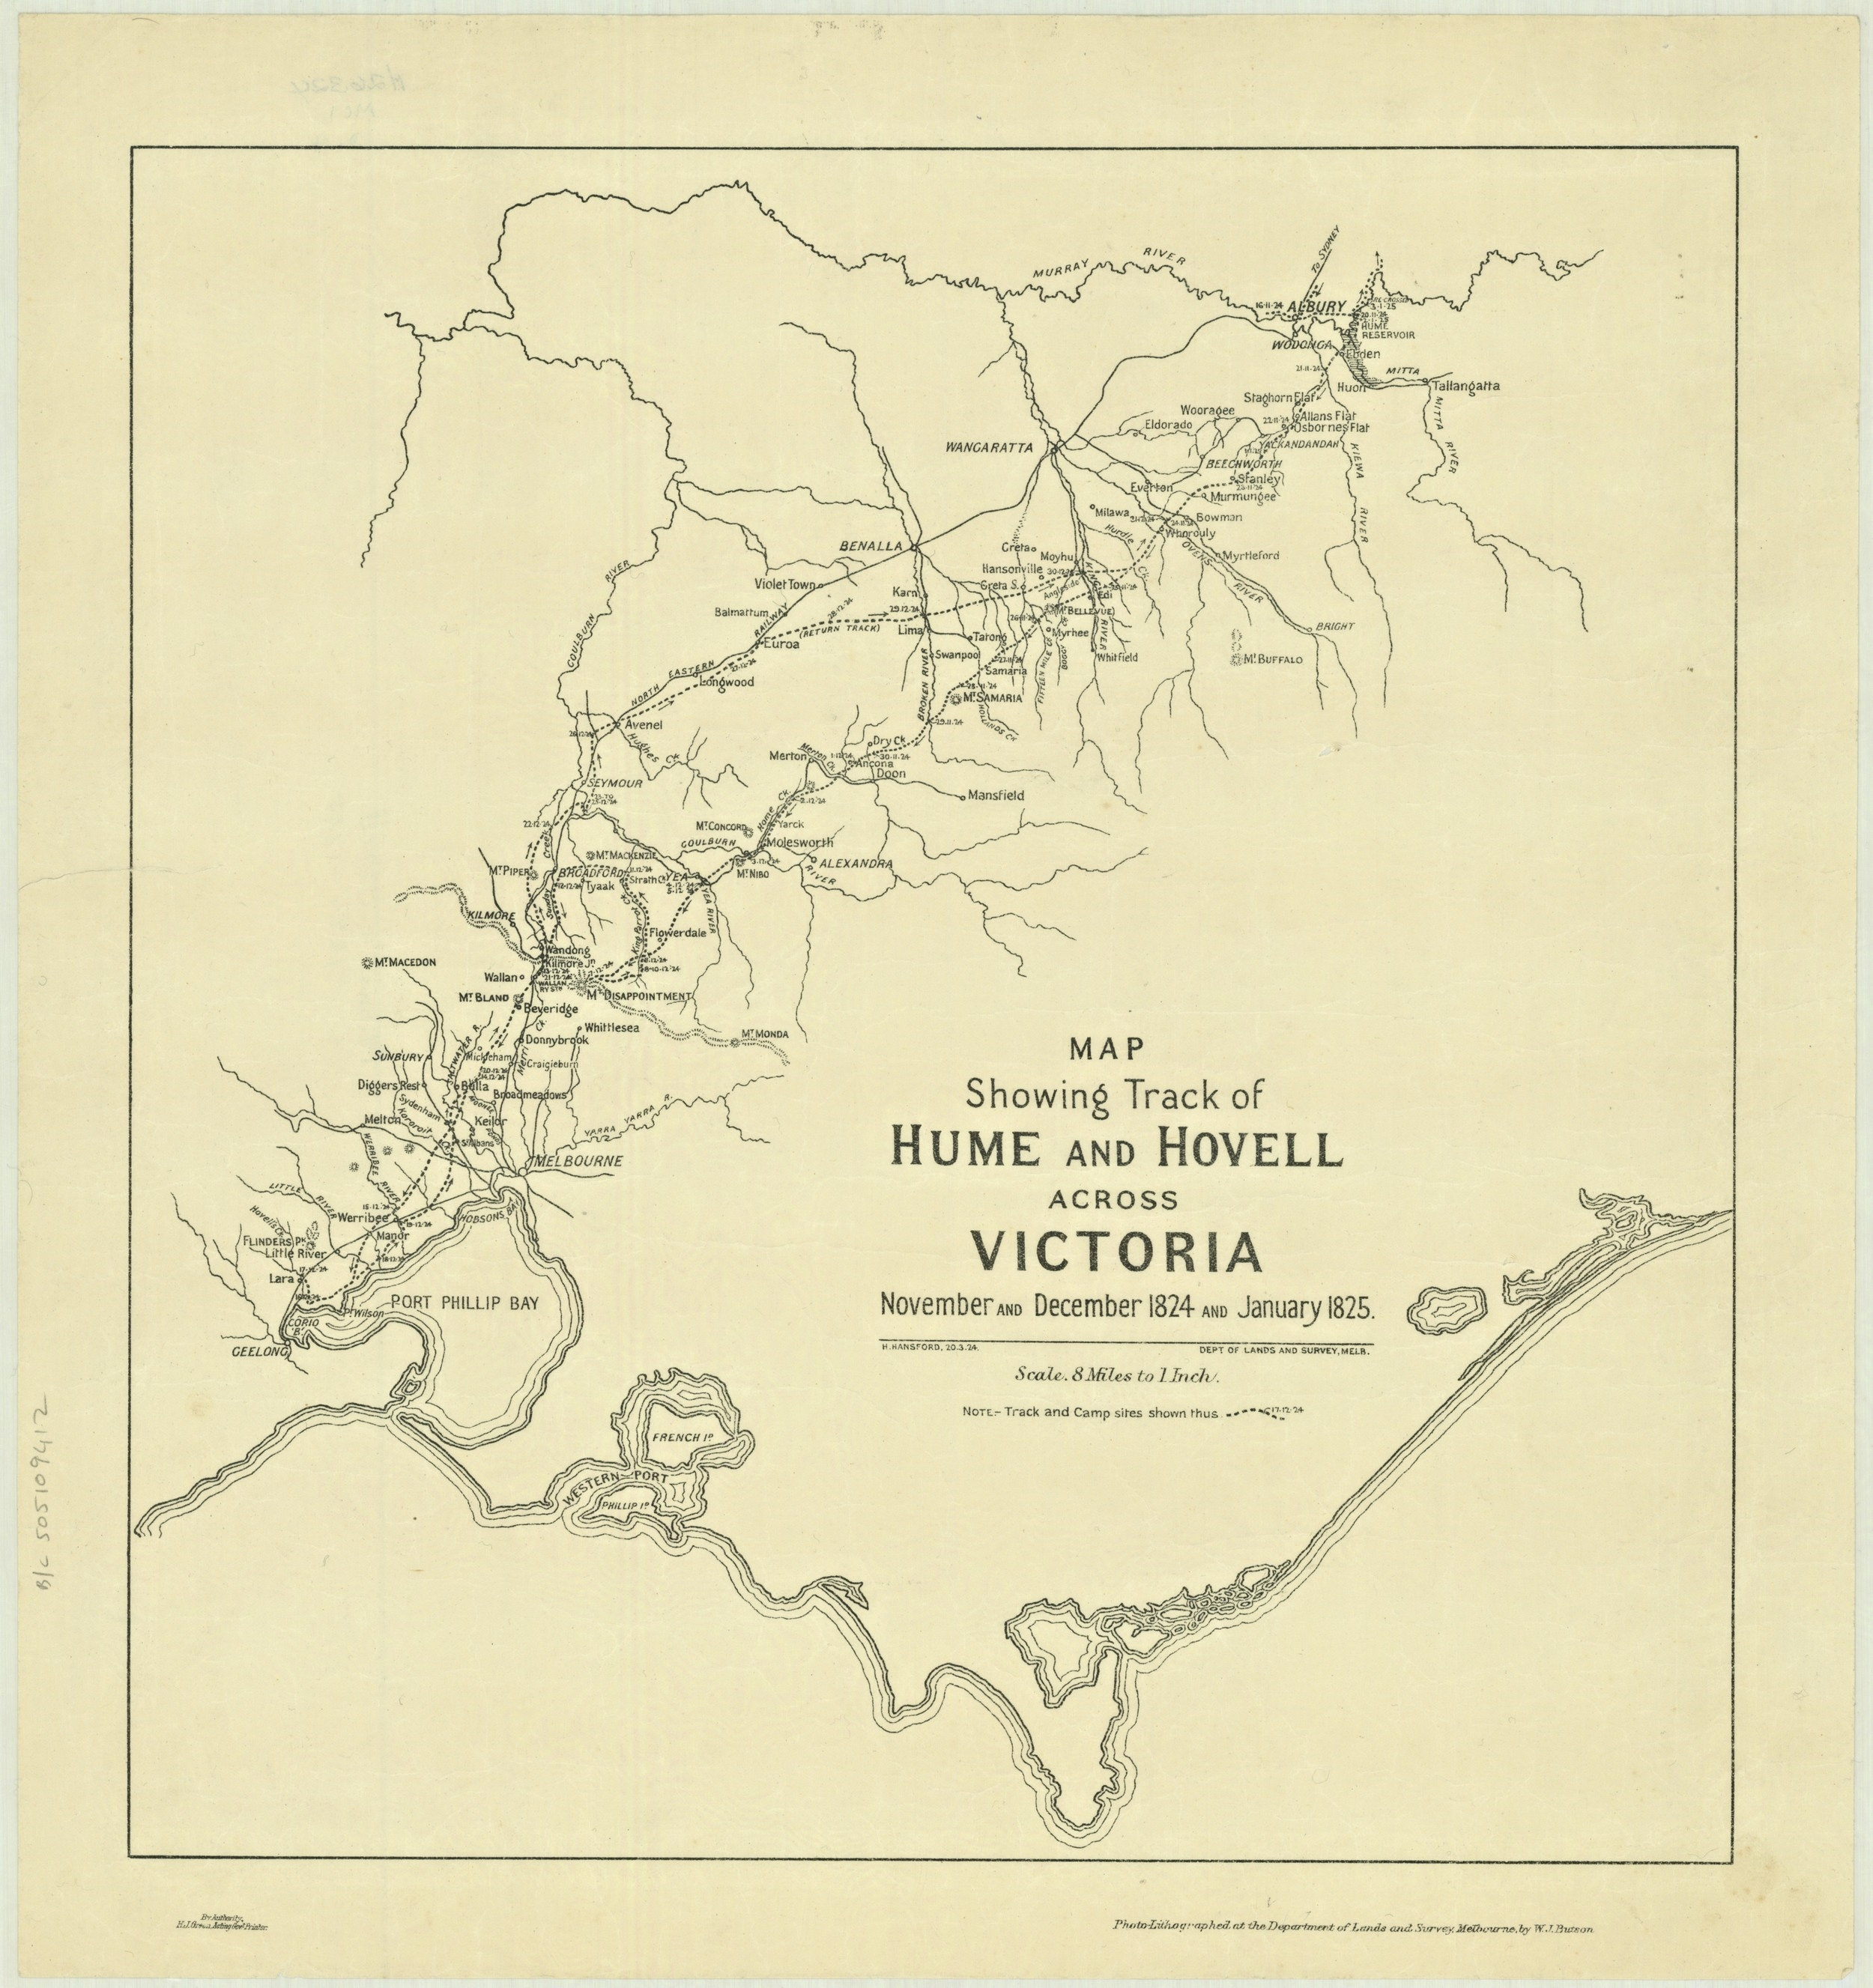 A map showing the track of explorers Hume and Hovell across Victoria. November and December 1824 and January 1825.